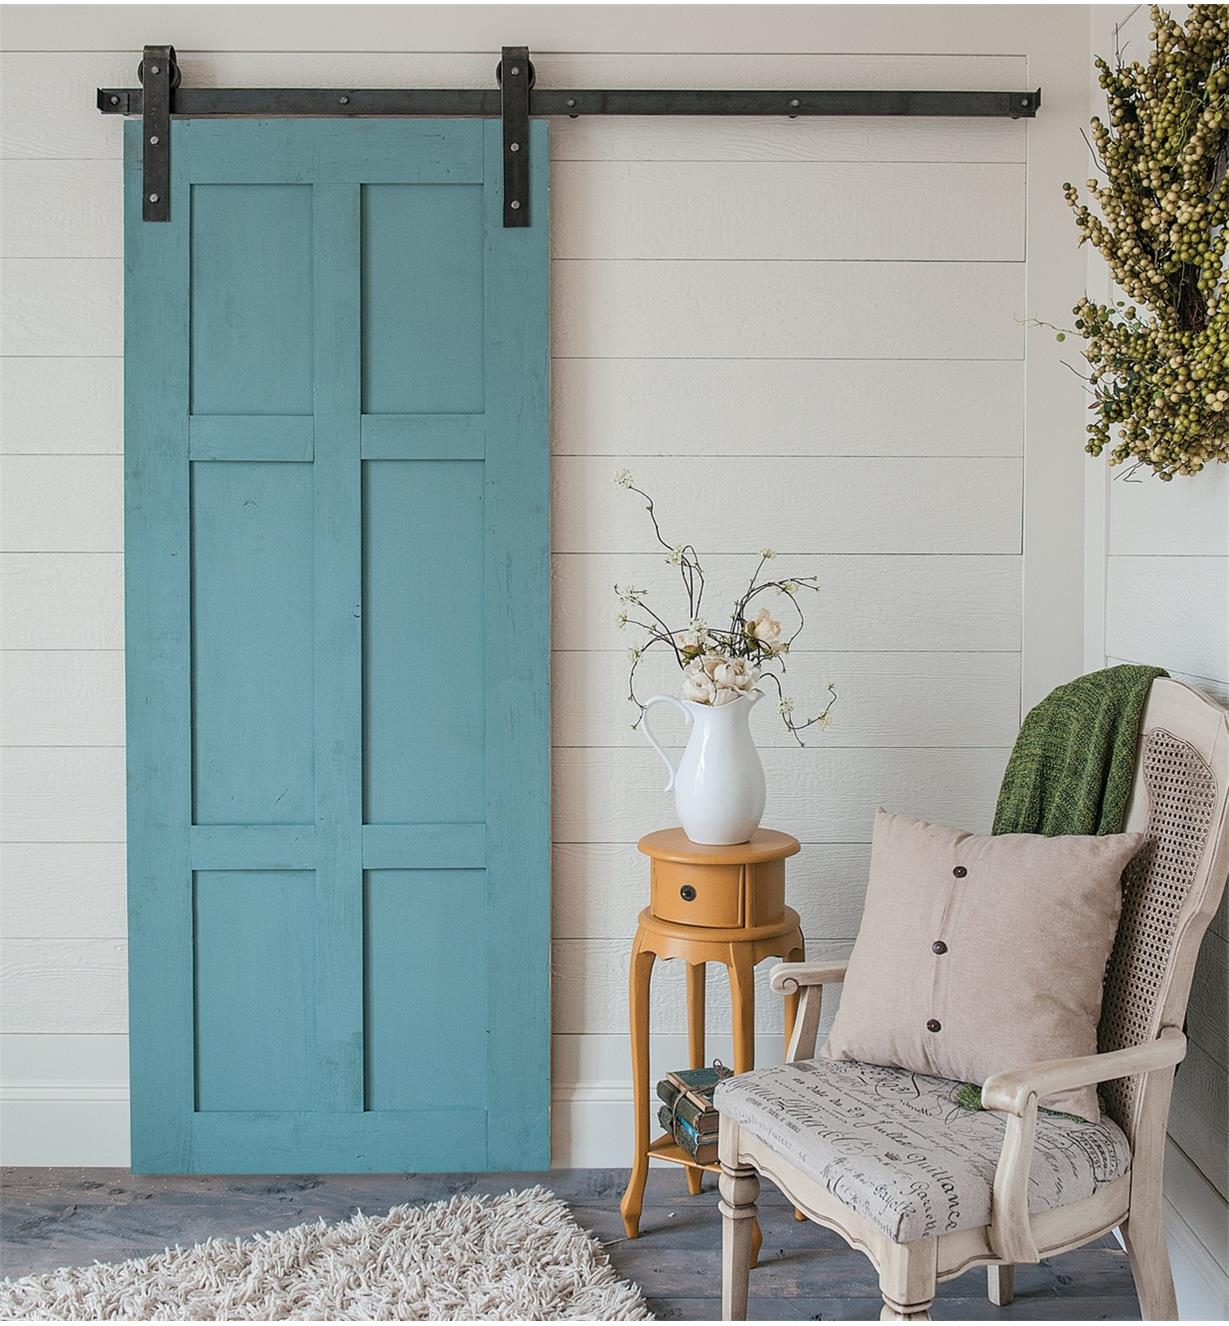 Example of door hung with Classic Face-Mount Barn-Style Door Hardware